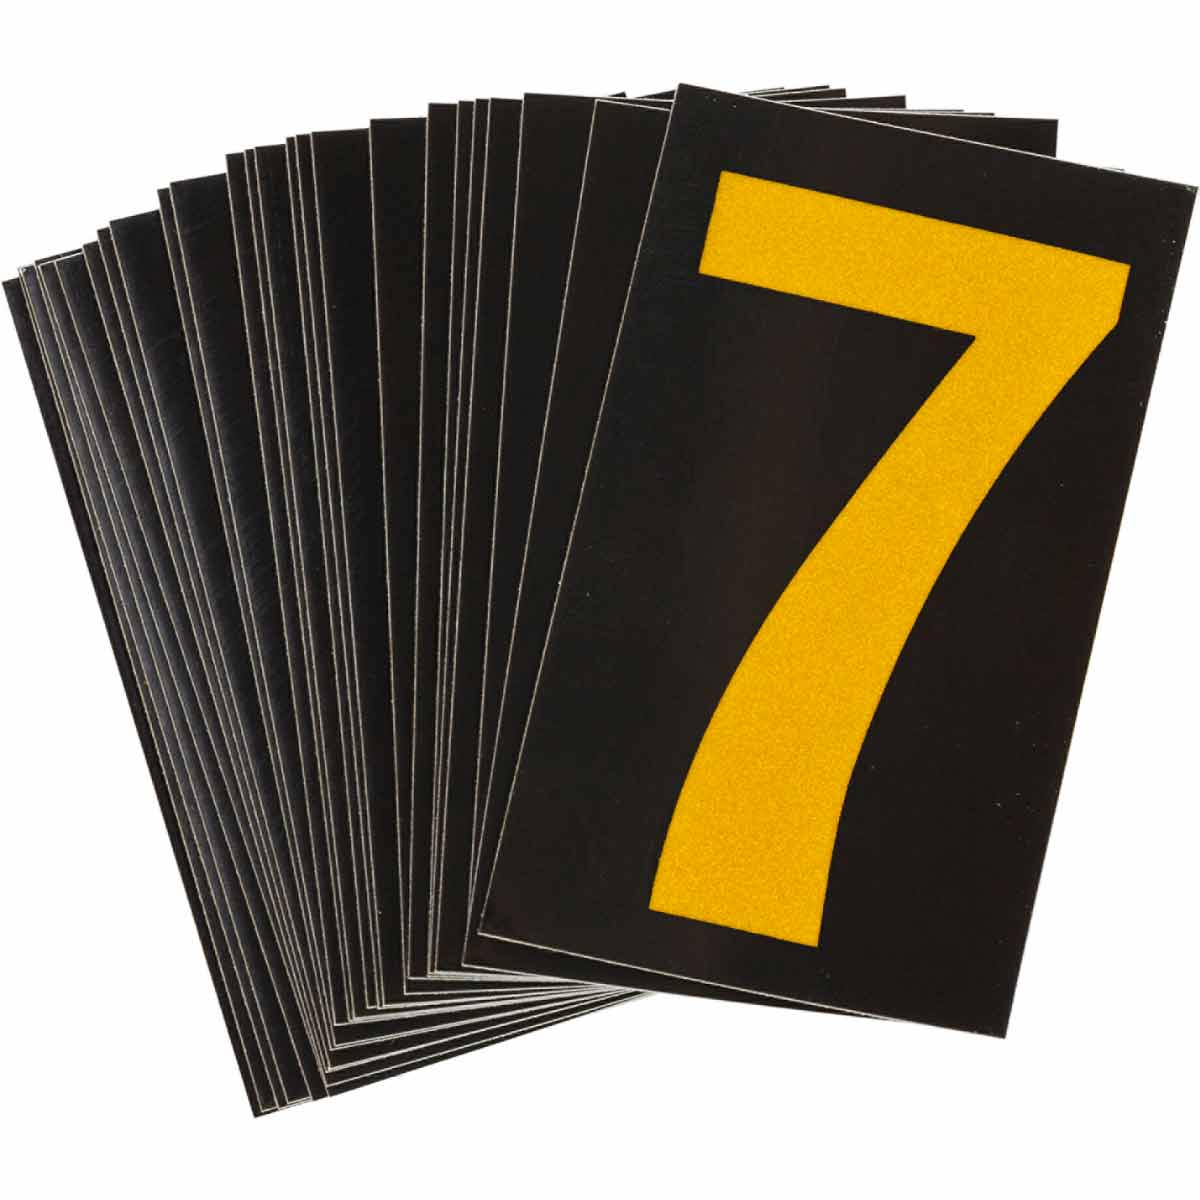 """BRADY 5000-7 MARKER REFLECTIVENUMBERS & LETTERS GROUP 1 1-3/4"""" X2-7/8"""" YELLOW ON BLACK 25 PER PACK"""